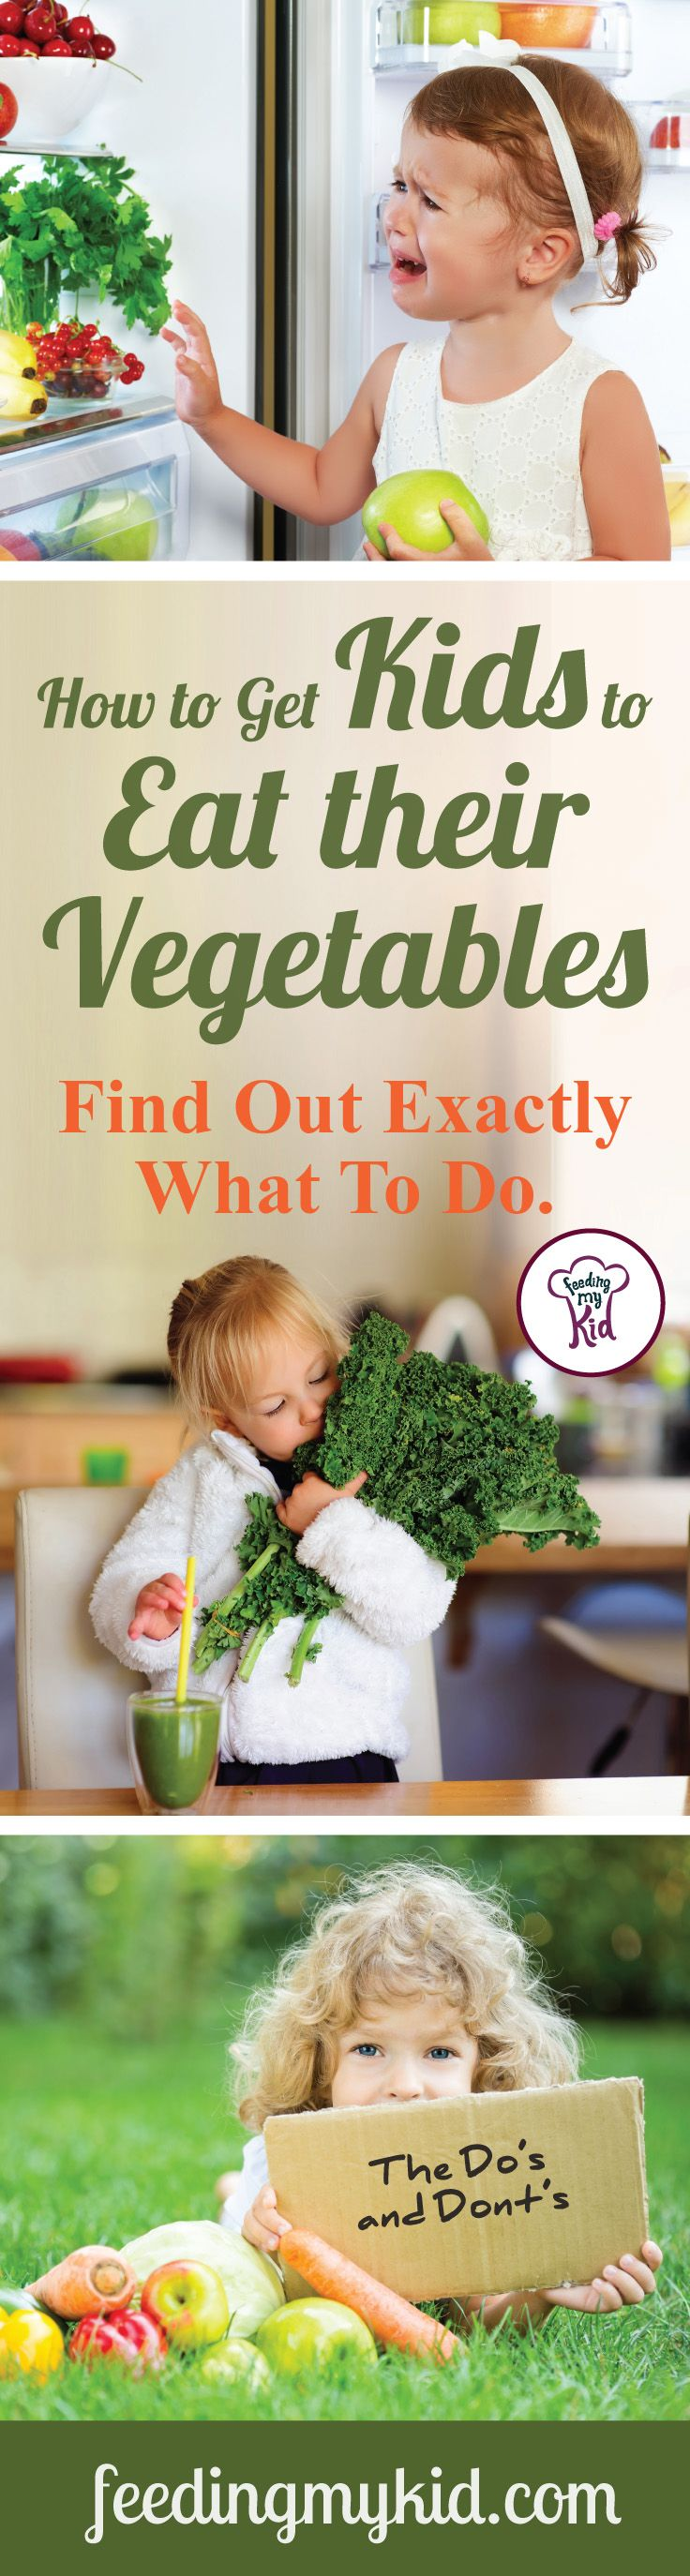 This is a must pin! Find out how to get kids to eat their vegetables! Stop your picky eater's picky eating habits in their track with these easy tips! Feeding My Kid is a website for parents, filled with all the information you need about how to raise your kids, from healthy tips to nutritious recipes. #pickyeating #pickyeater #tips #howto